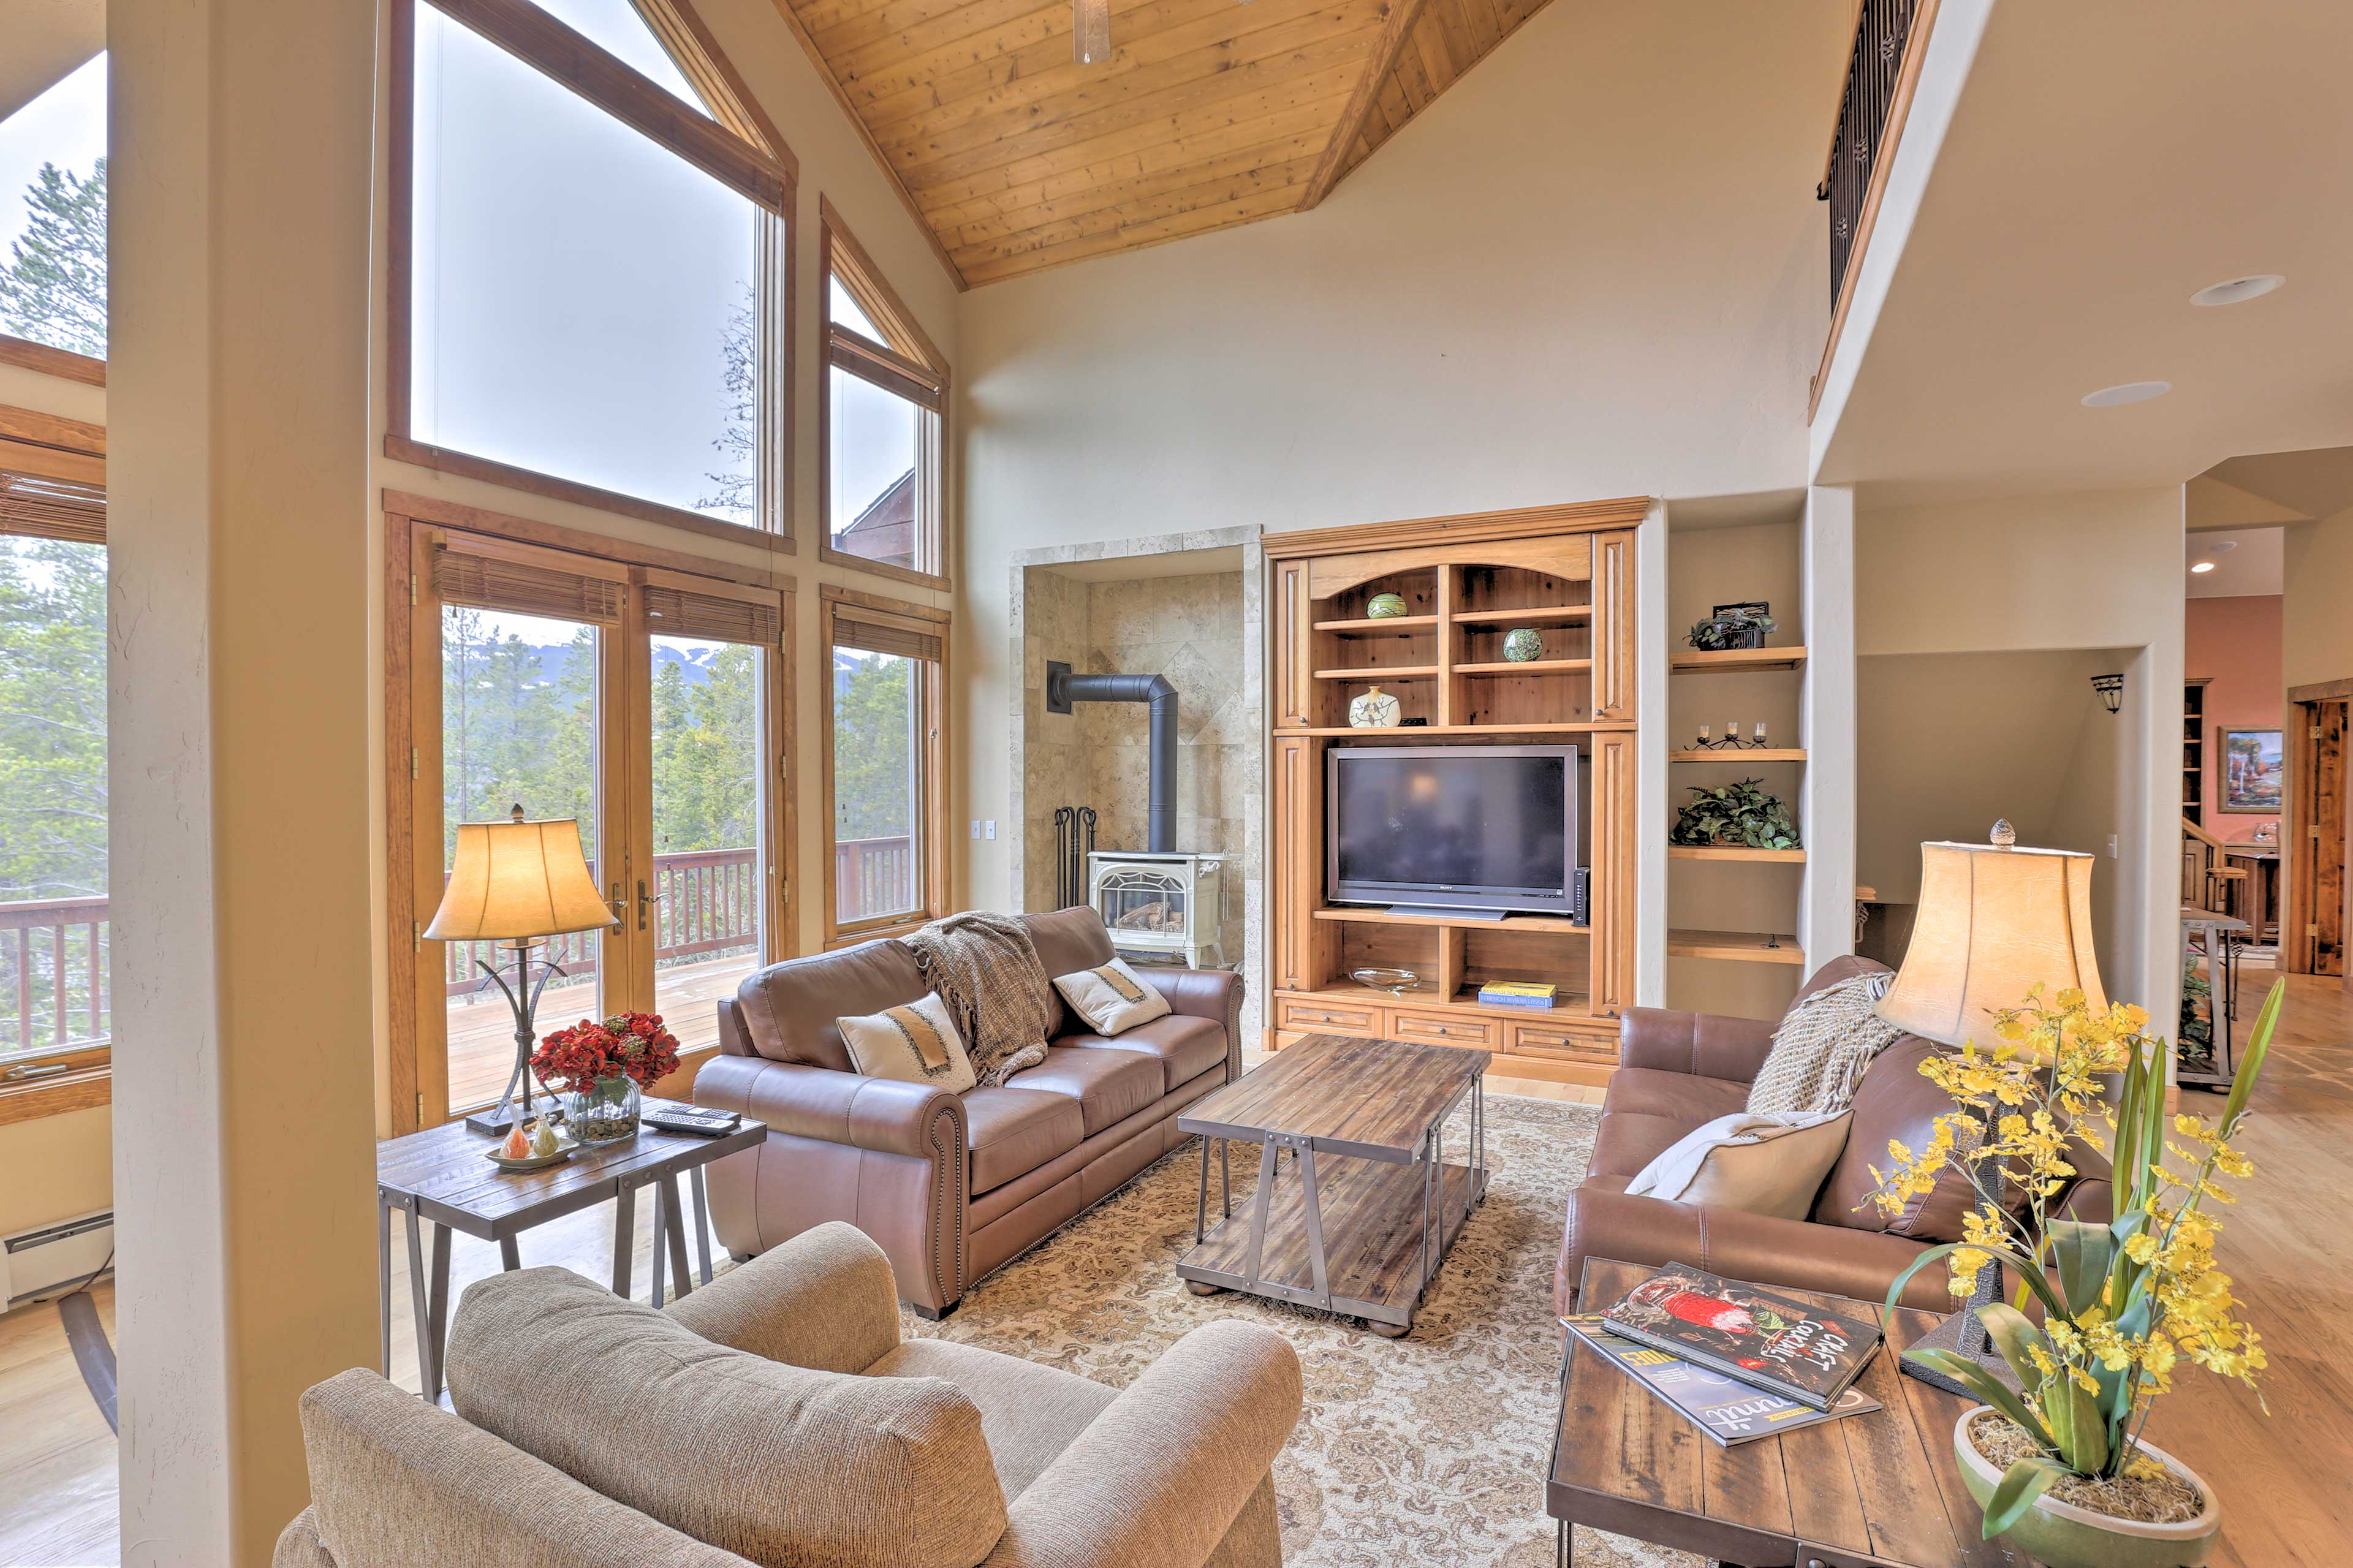 The vacation rental is 2 minutes from Main St. & 5 minutes from BreckConnect.